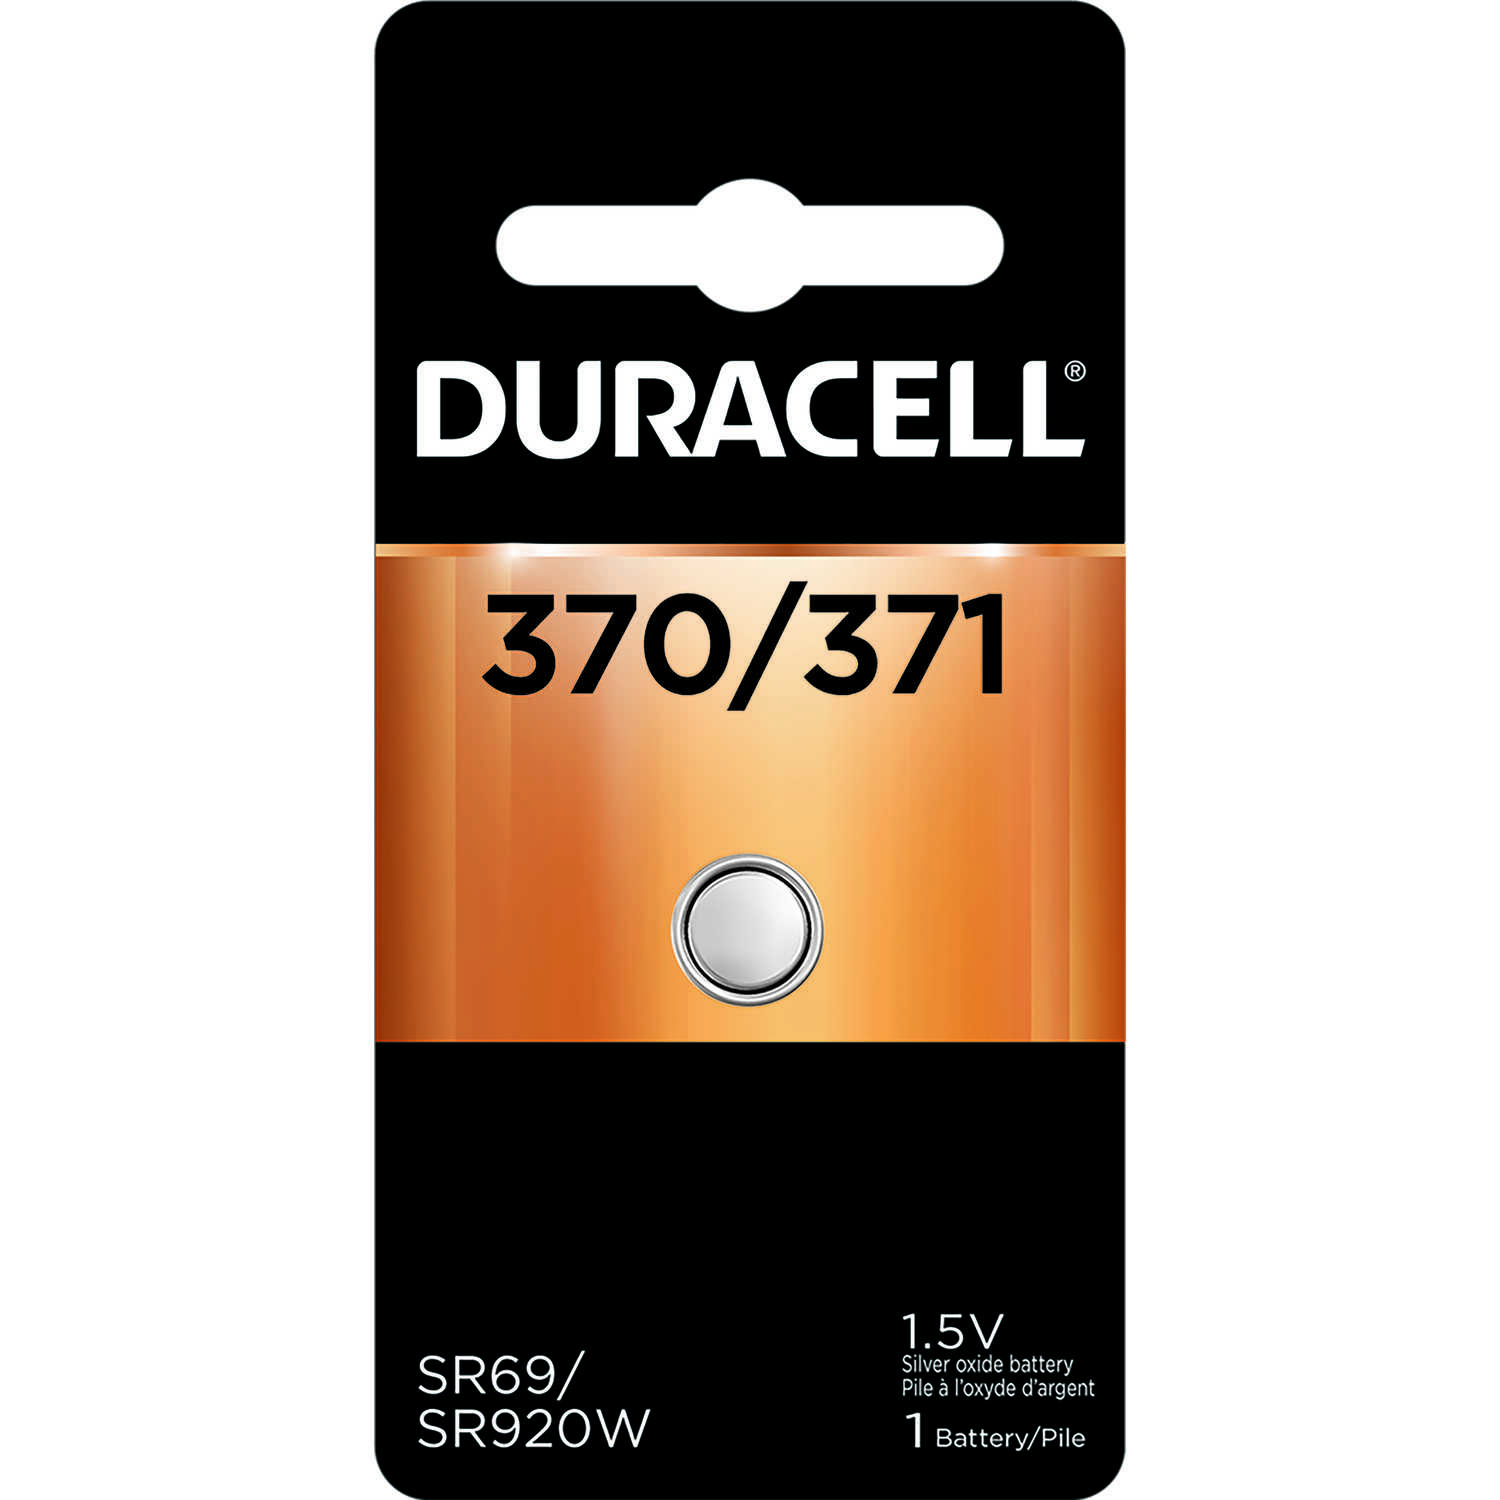 Duracell  Silver Oxide  370/371  1.5 volt Electronic/Watch Battery  1 pk